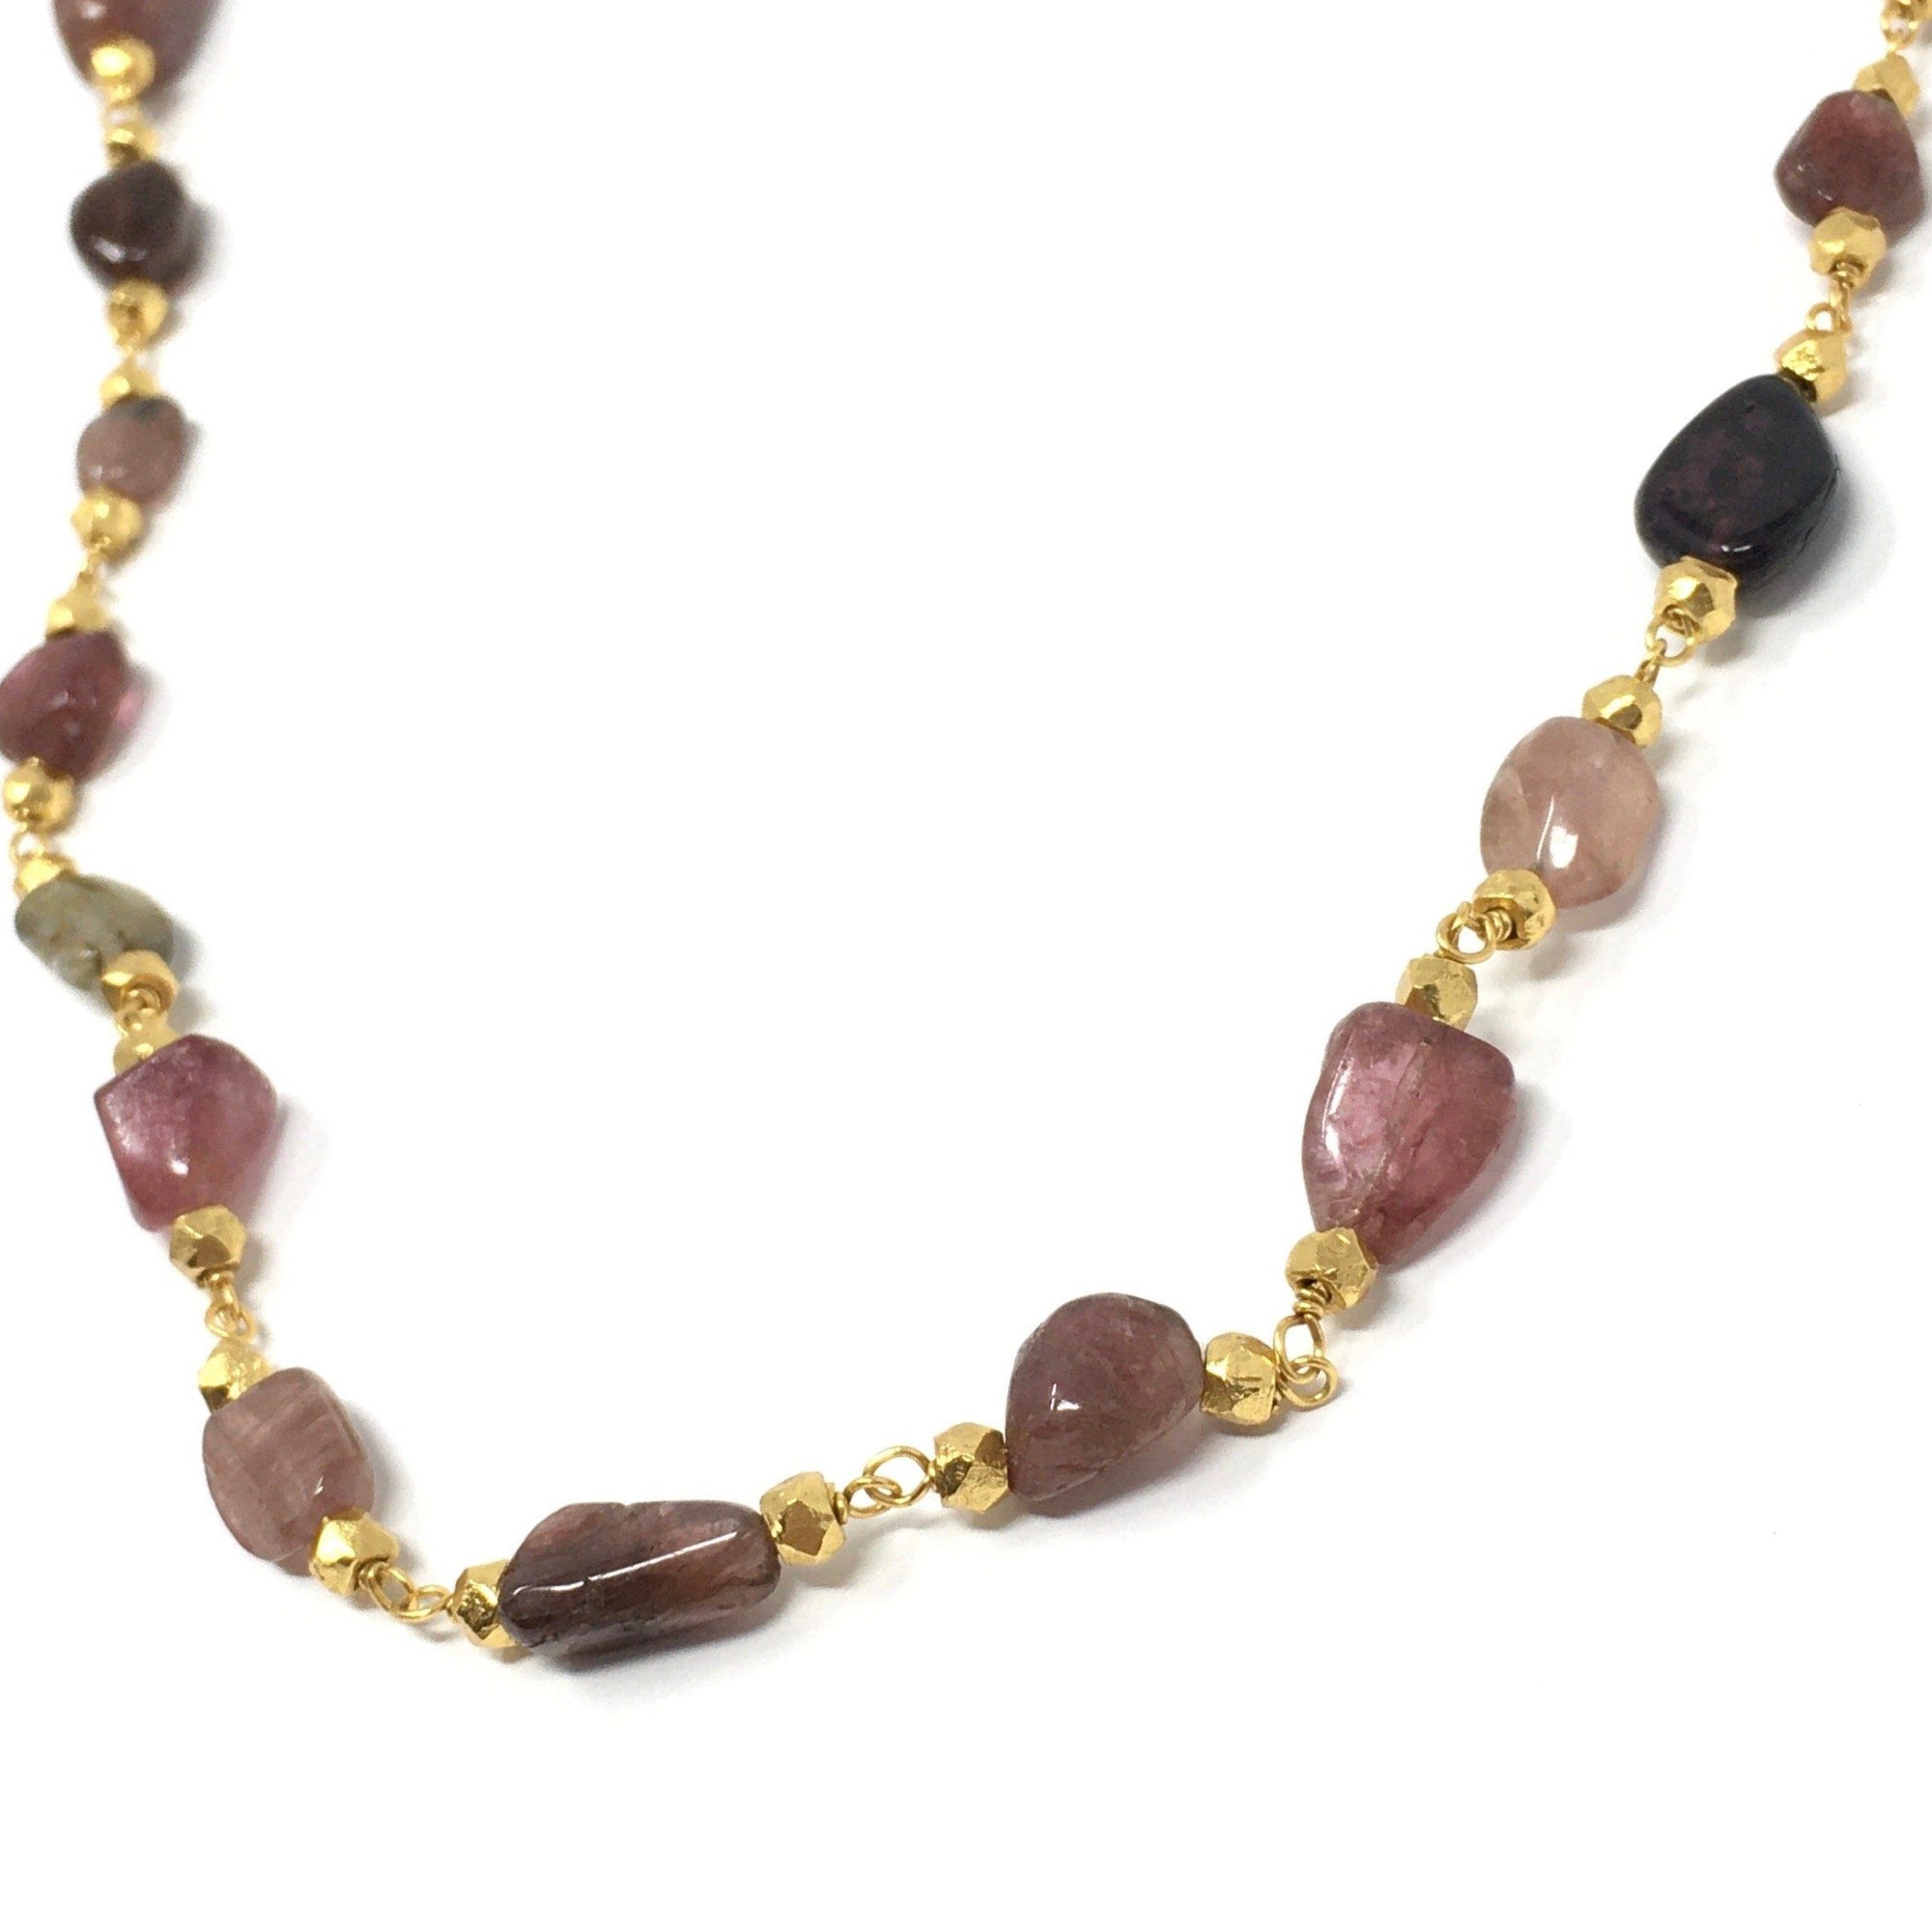 Tourmaline Long Necklace - Barnbury